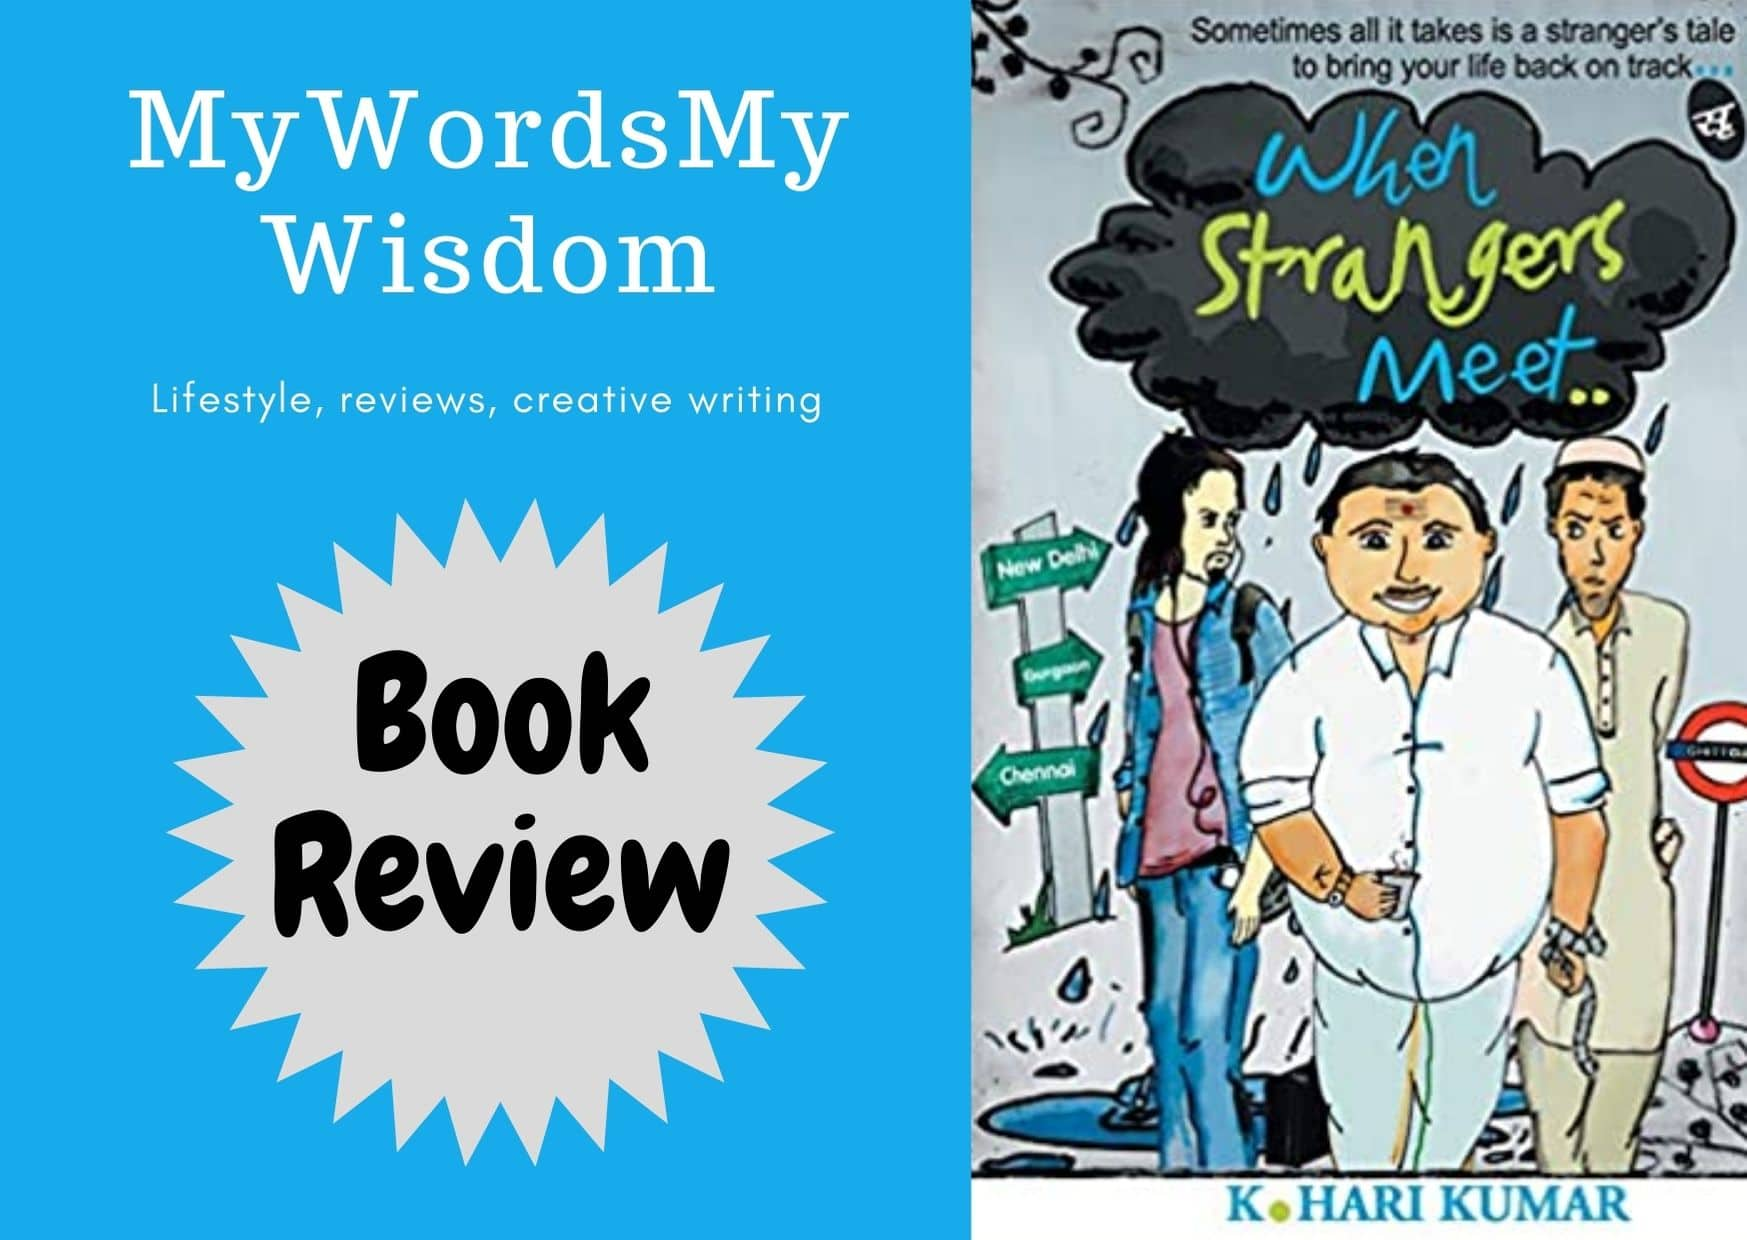 When strangers Meet- We can learn from other mistake an #bookreview